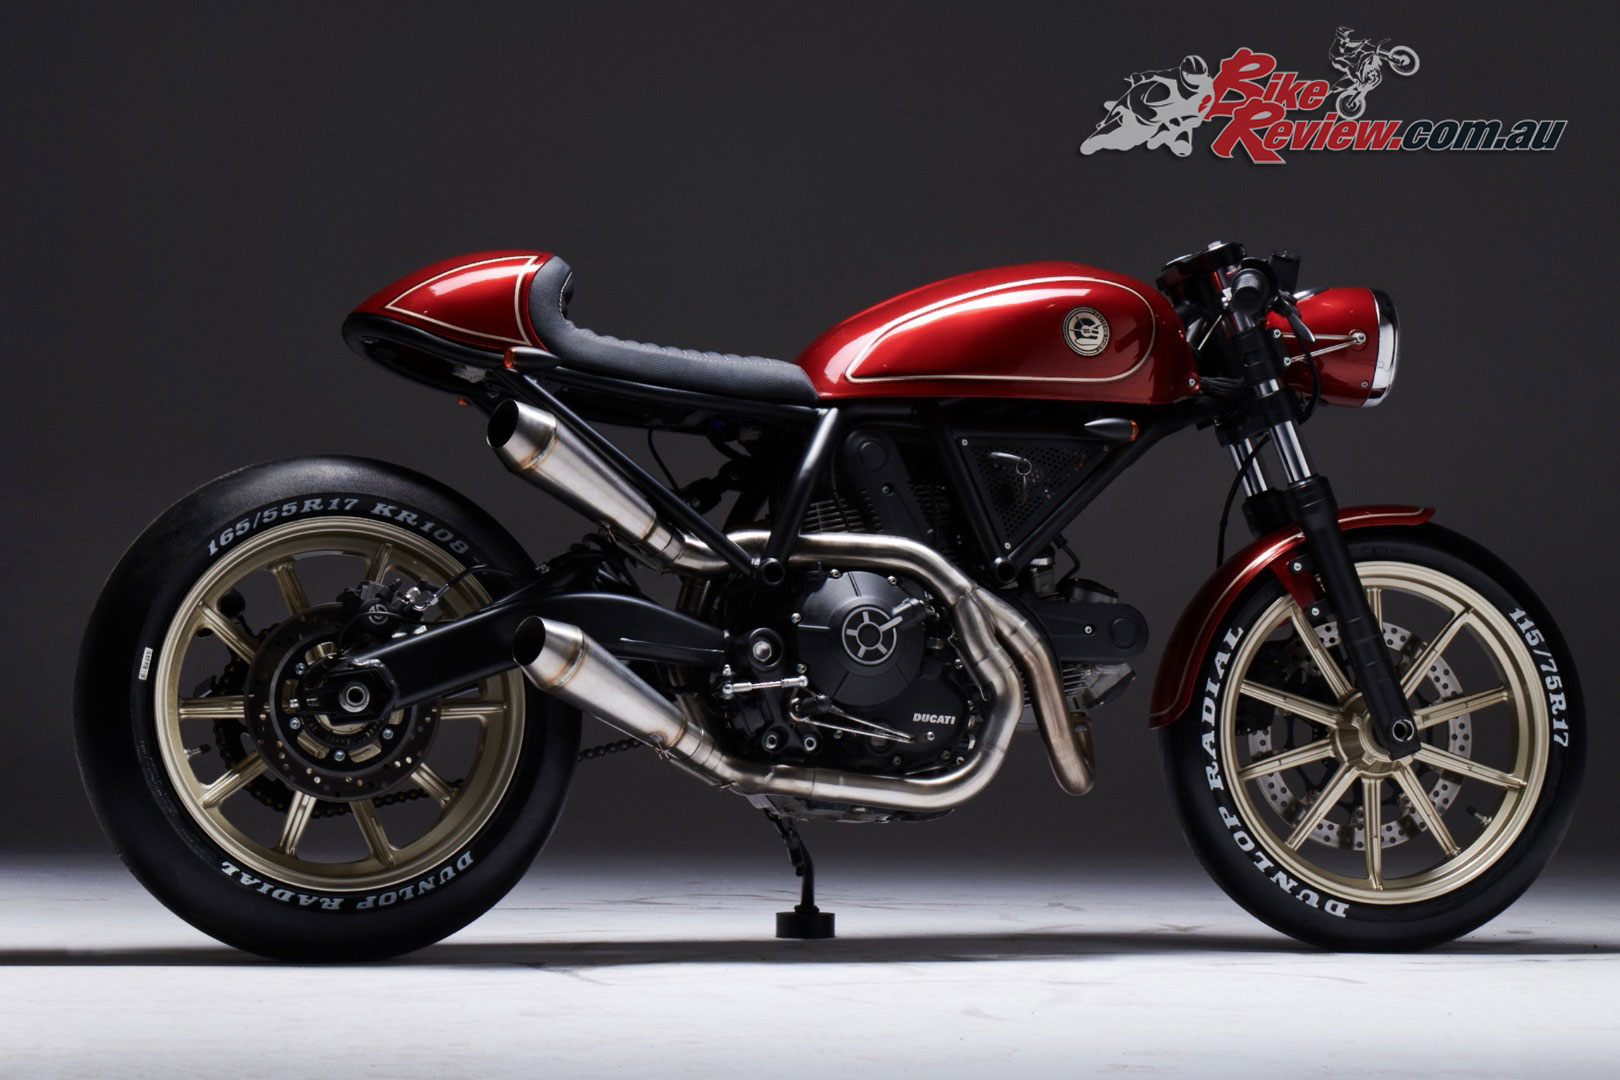 Ducati's Custom Rumble competition returns in 2019 - ESG Rubmle 400, 2018 Finalist